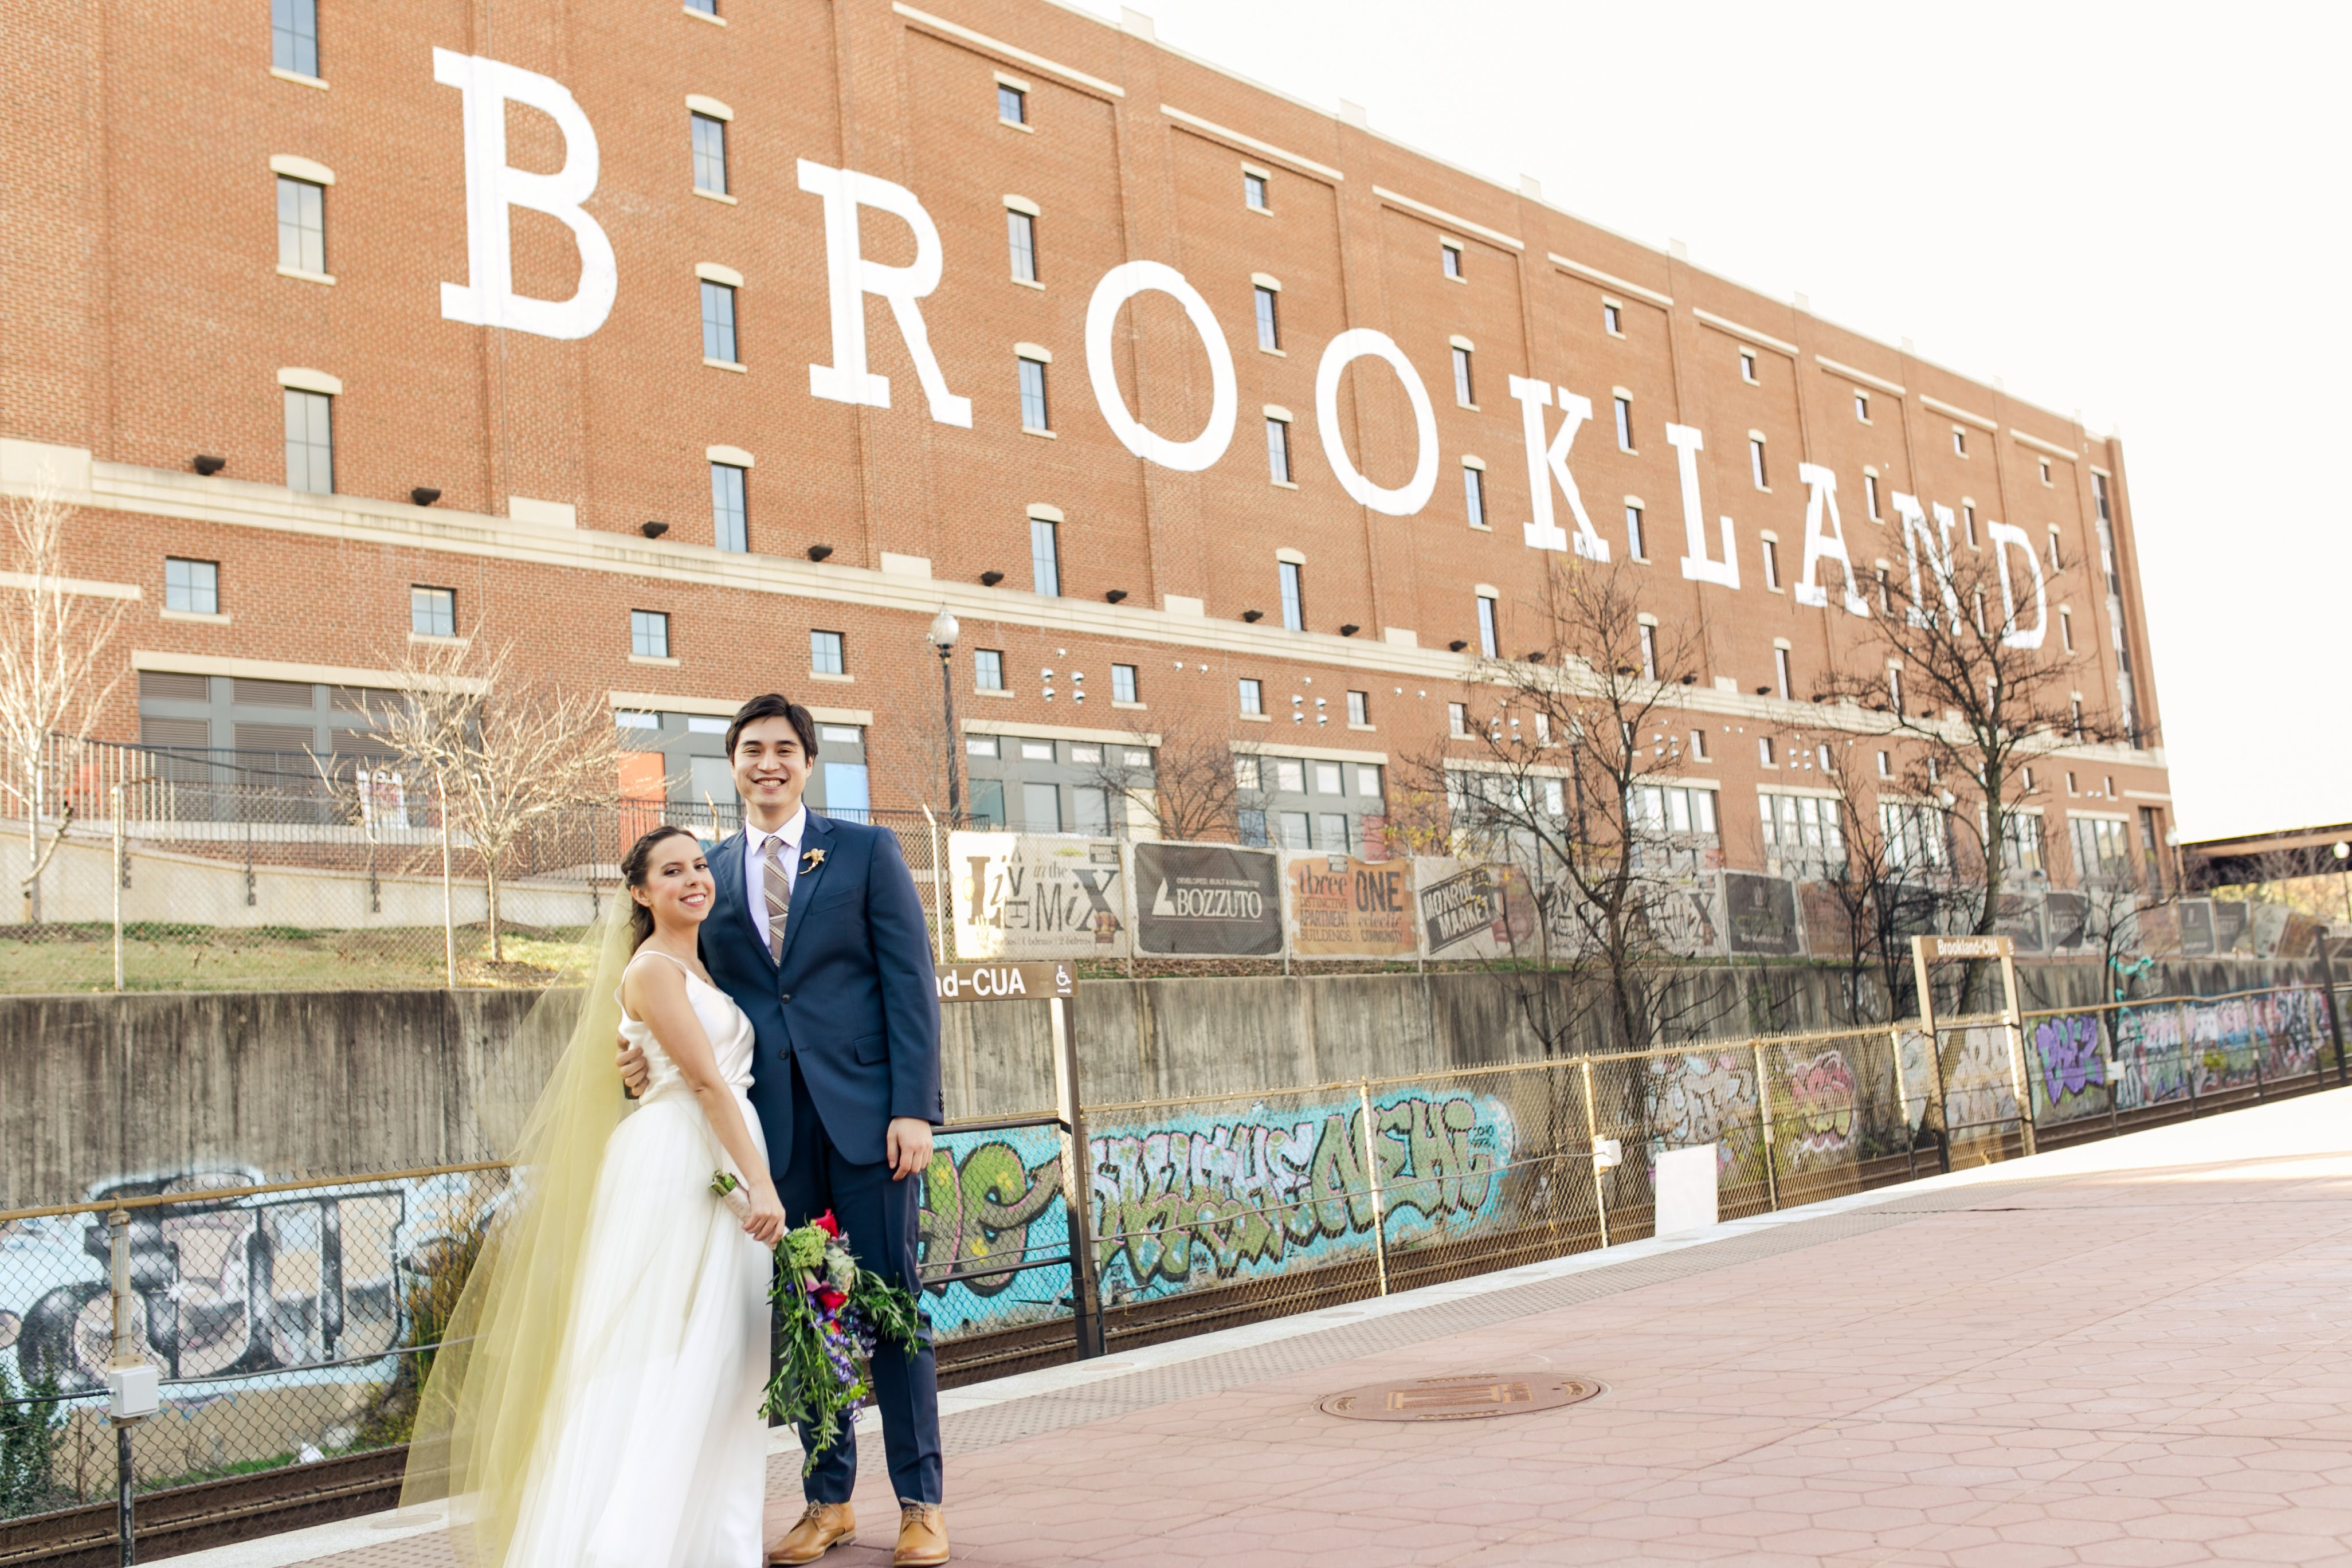 """He additionally accommodated our budget by cutting out things we didn't want like an engagement shoot and a second photographer,"" says Stephanie. (Image: Brandon C. Photography)"